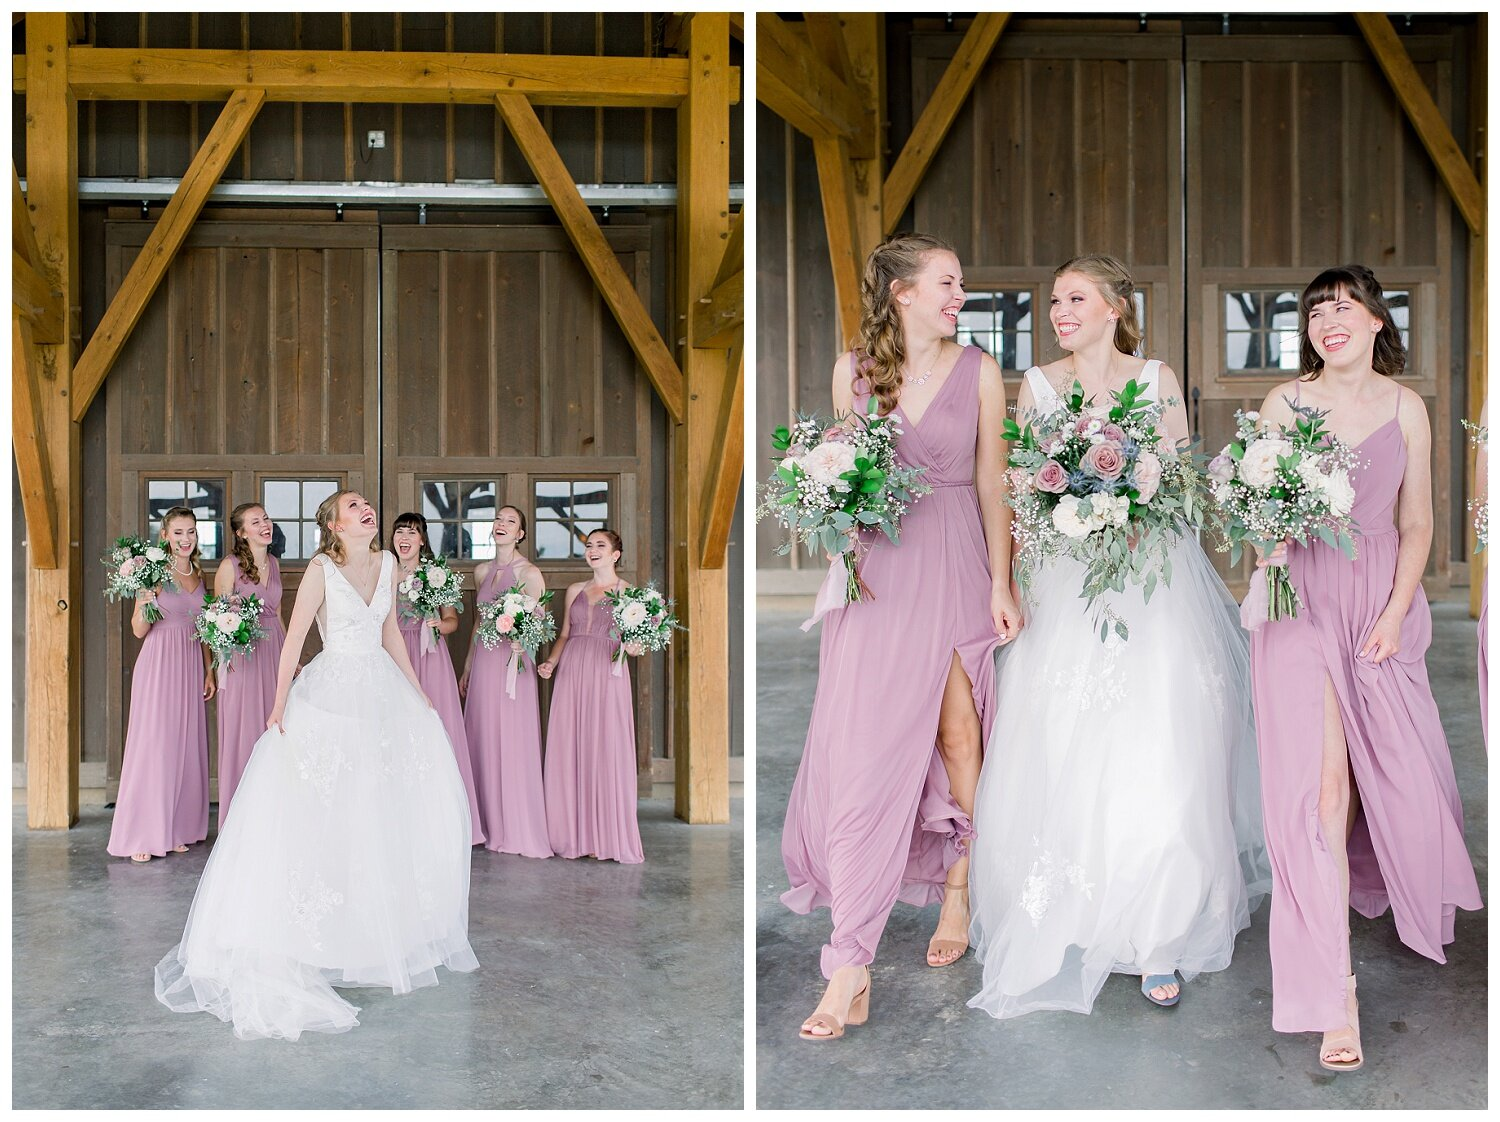 Weston-Red-Barn-Farm-Timber-Barn-Wedding-S+Z-0811-Elizabeth-Ladean-Photography_photo-_9697.jpg